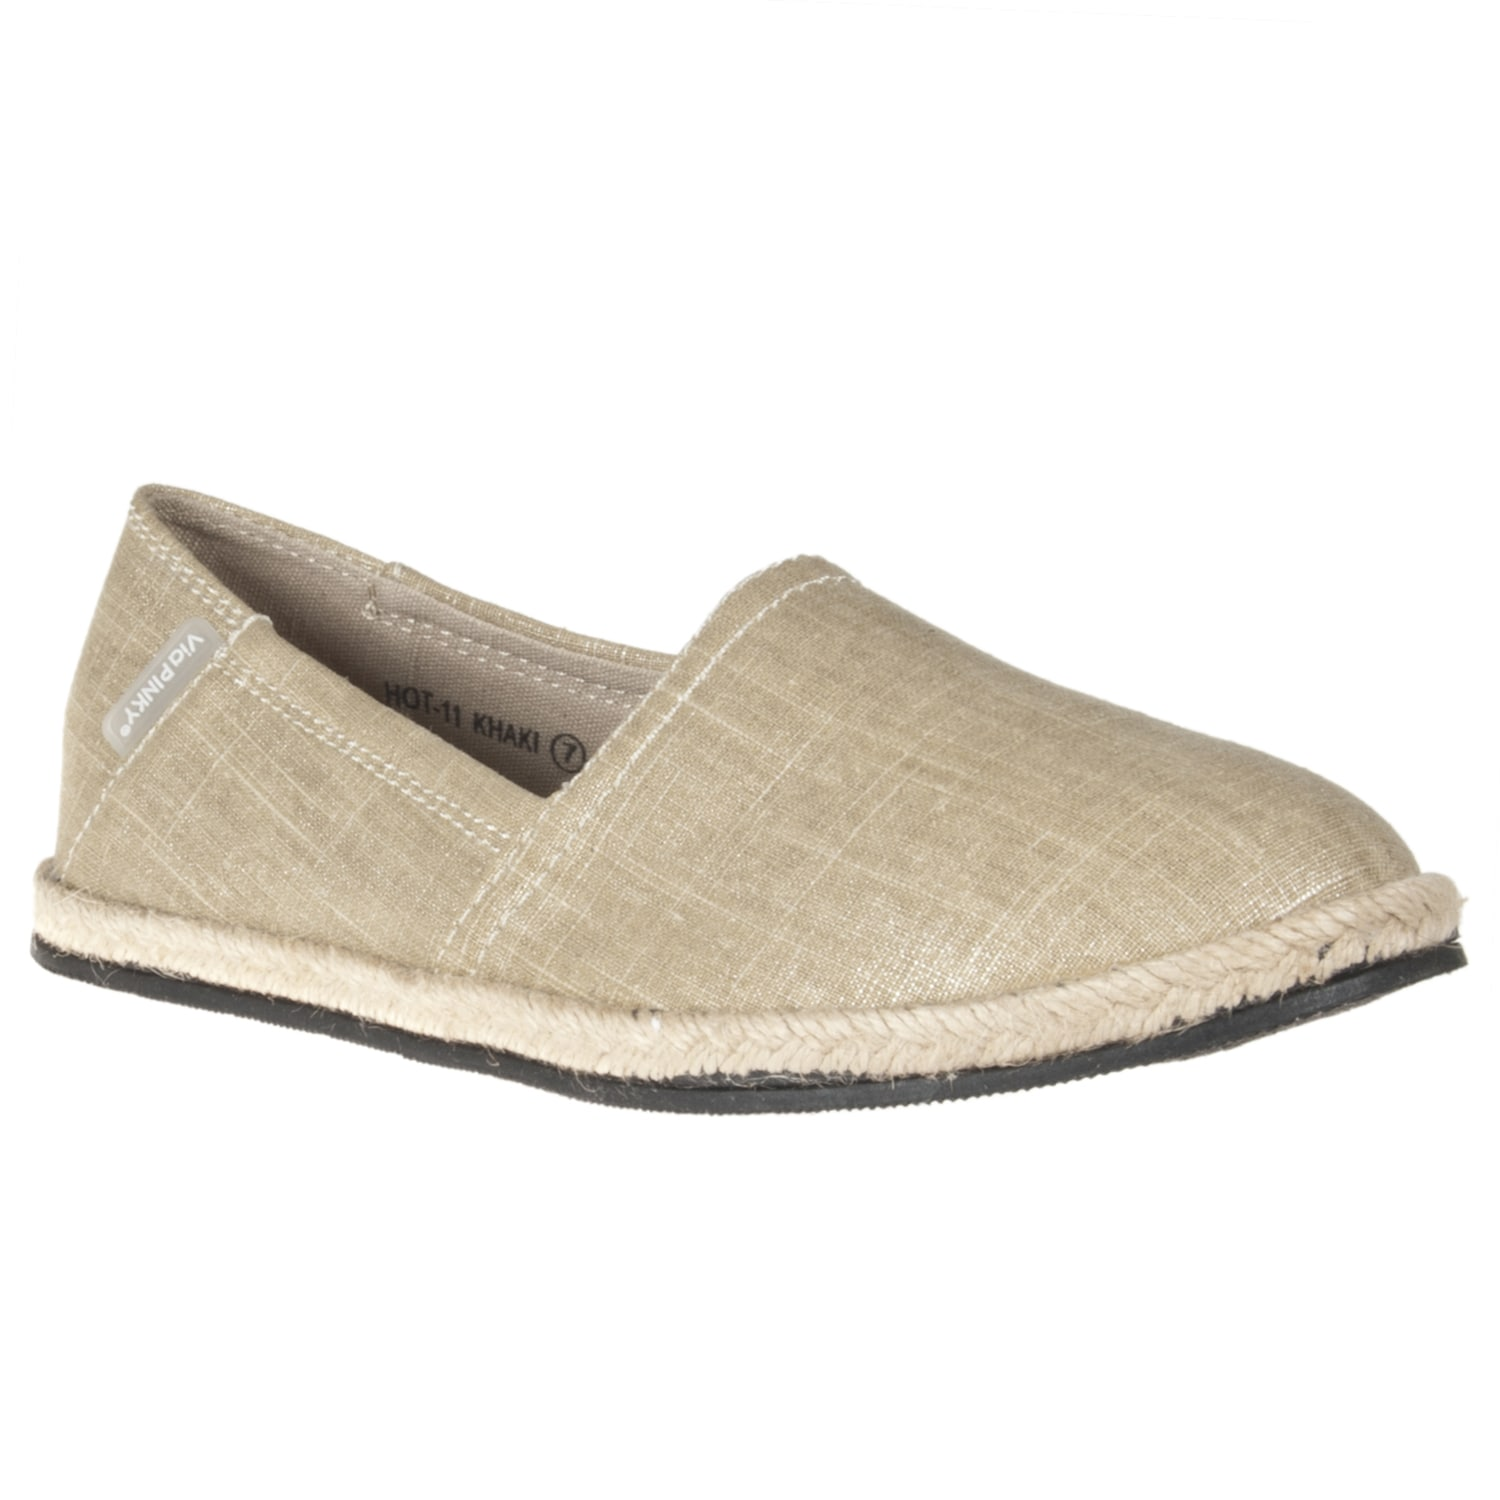 Riverberry Women's 'Hot' Khaki Canvas Slip-ons